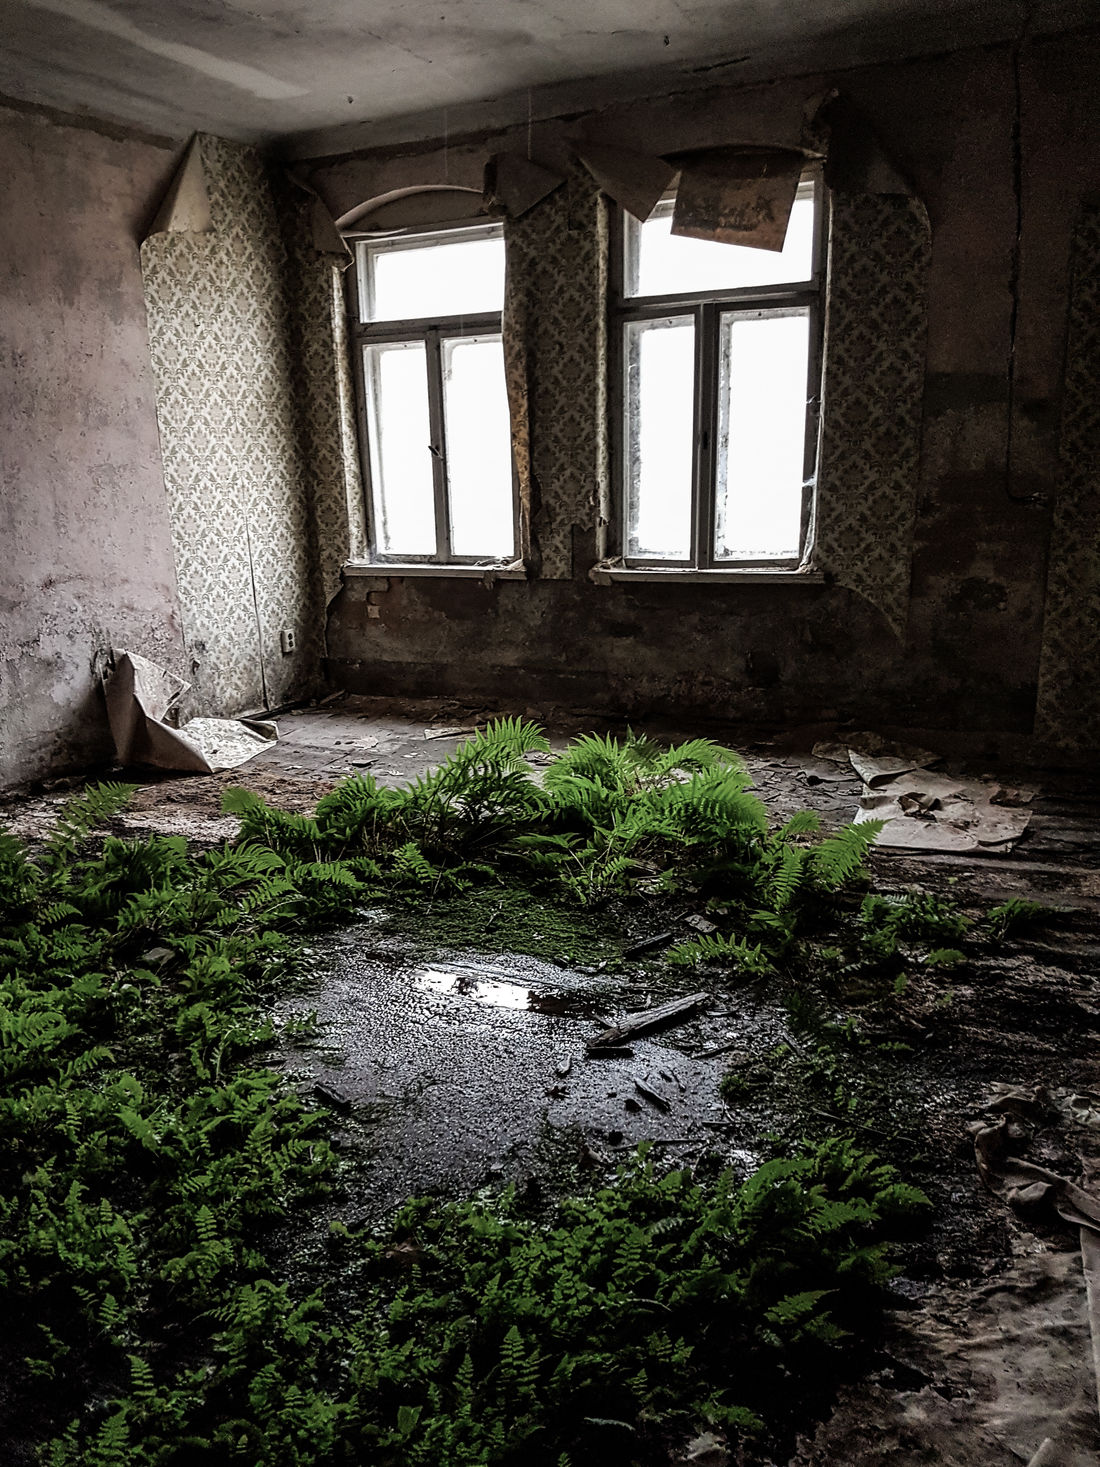 Window Indoors  Abandoned Day Architecture Built Structure No People Bad Condition Sunlight EyeEm Gallery EyeEm Best Shots Abandoned Places Abandoned Buildings Windows Urbex The Week On EyeEm Urban Obsolete Forgotten Places  Exploring Green Overgrown And Beautiful Forgotten Places  Light And Shadow Nature